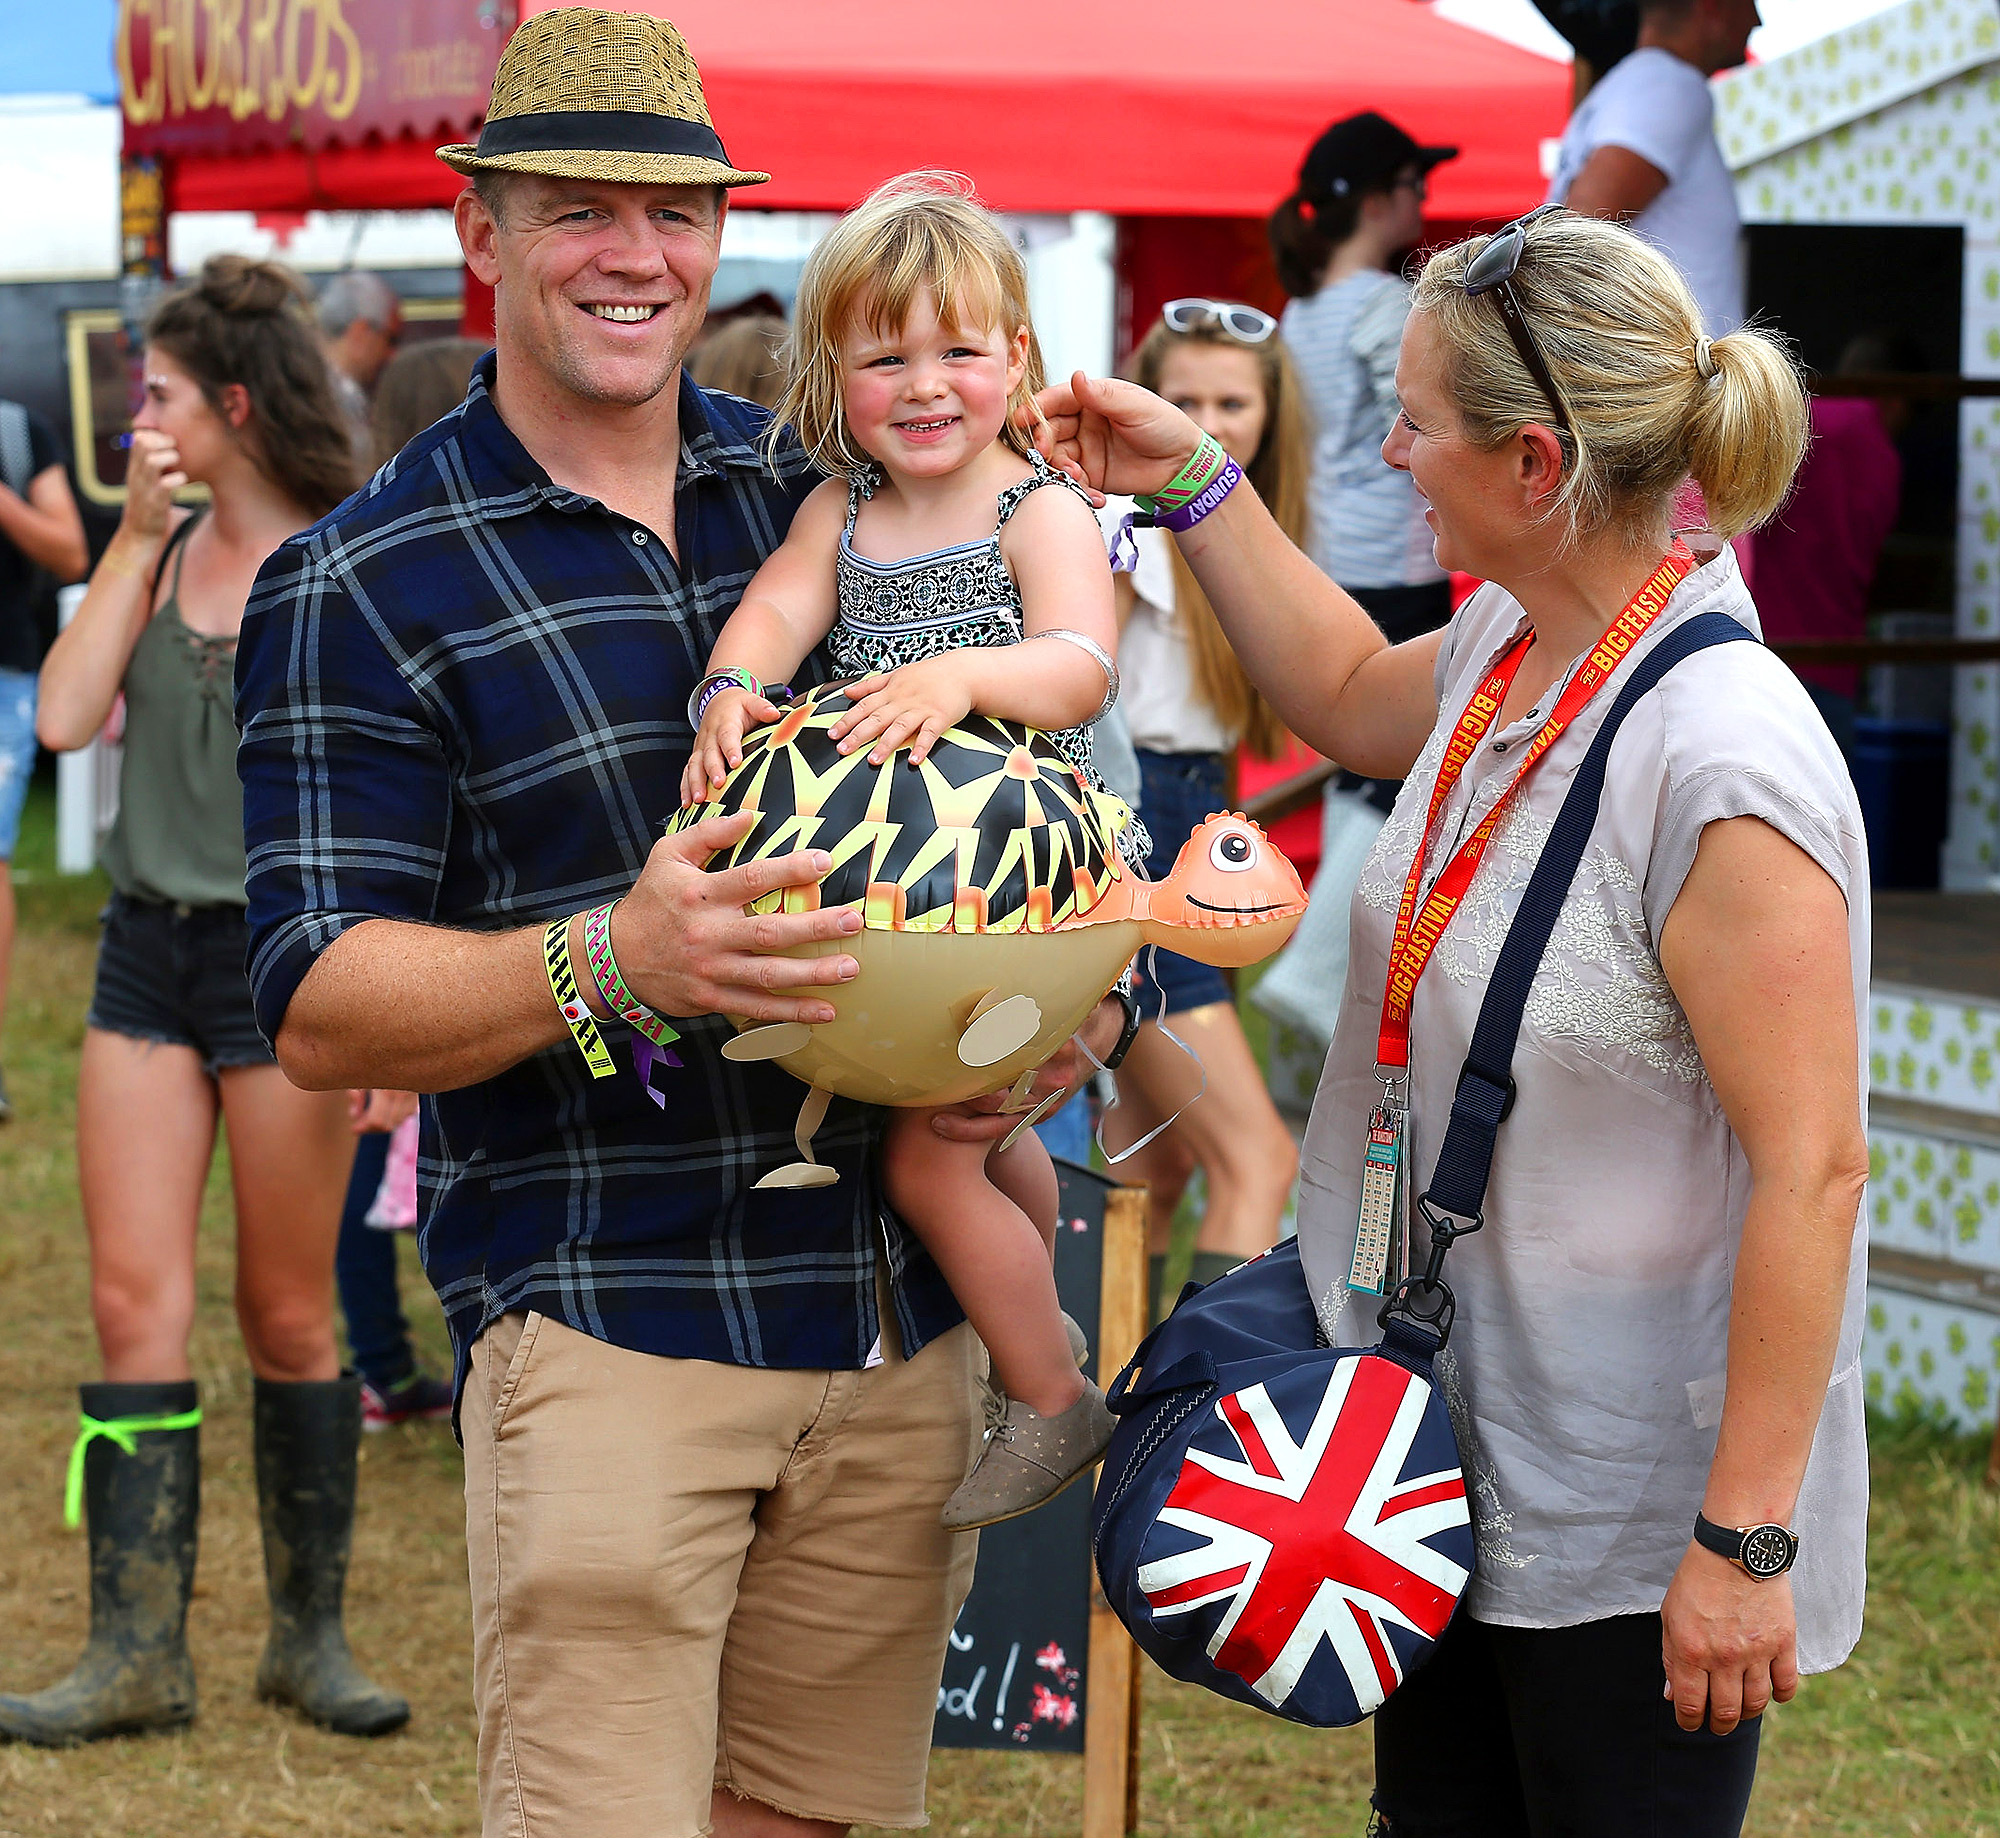 The Queen's Granddaughter Zara Tindall Just Announced a Very Special Name for Her New Daughter tindall-12